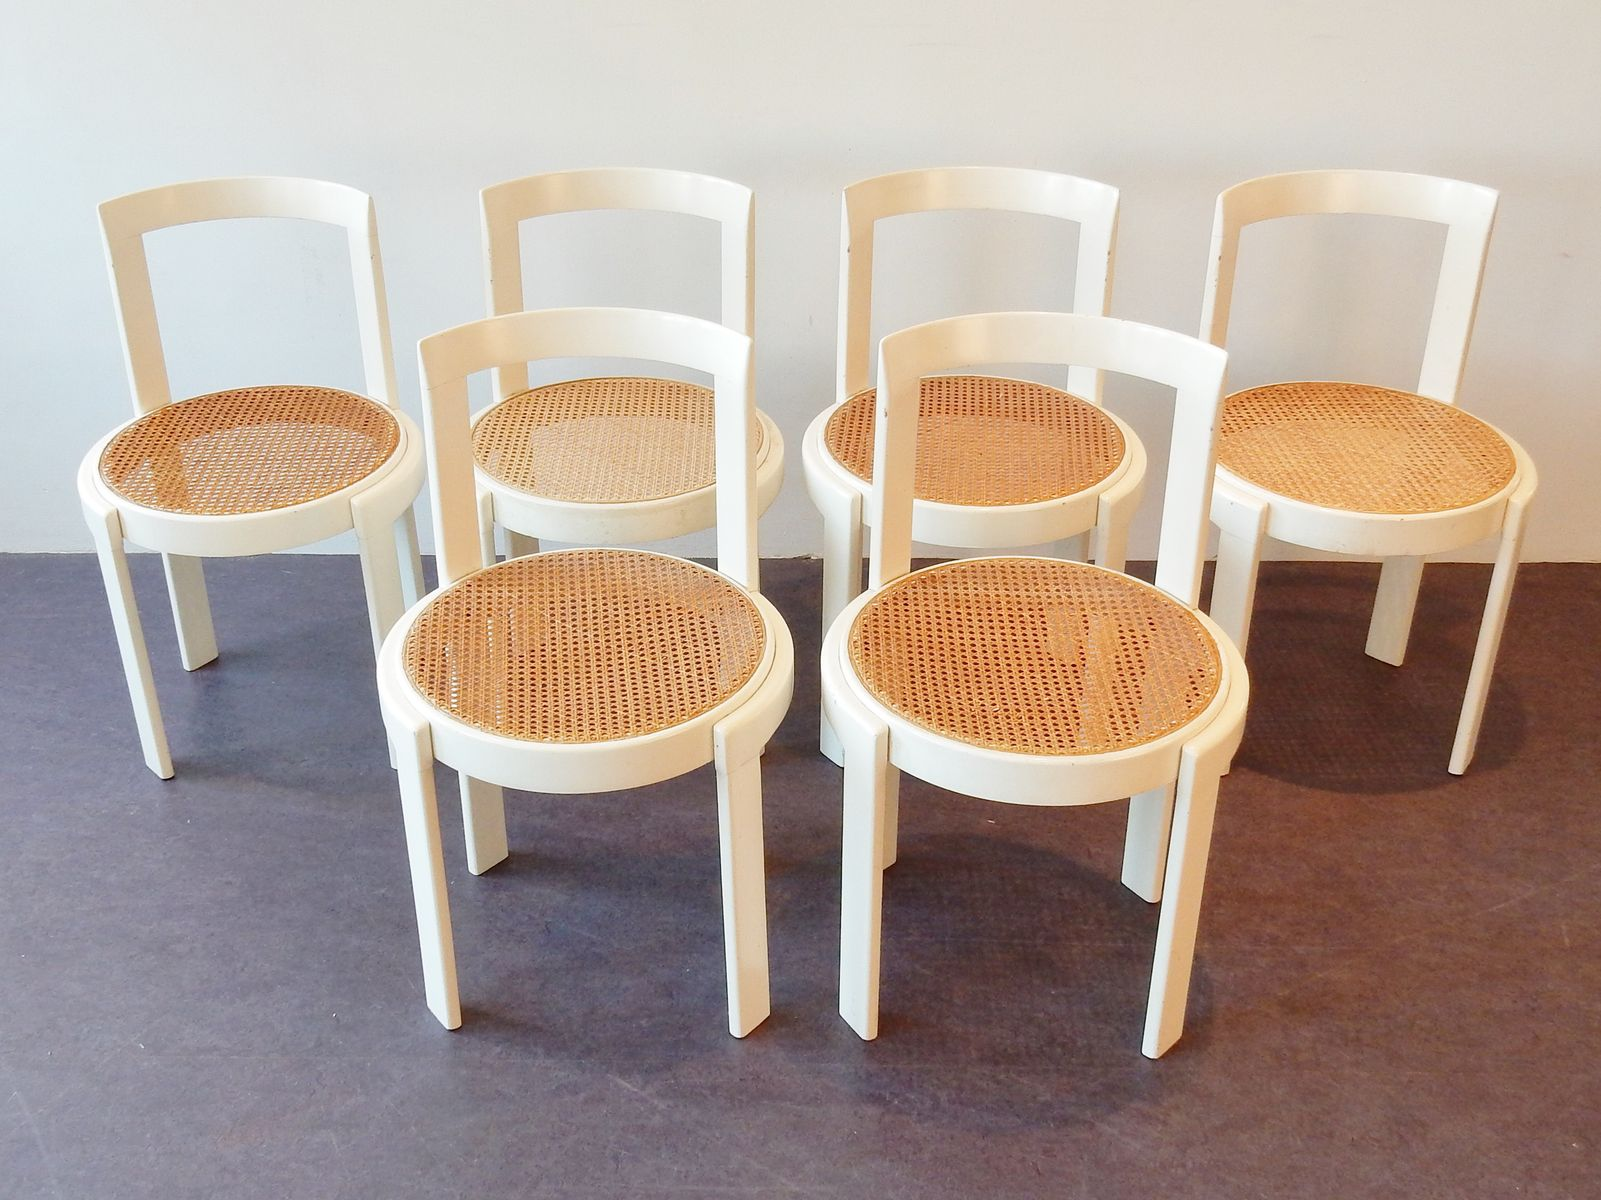 Vintage Dining Chairs With Wicker Seats Set Of 6 For Sale